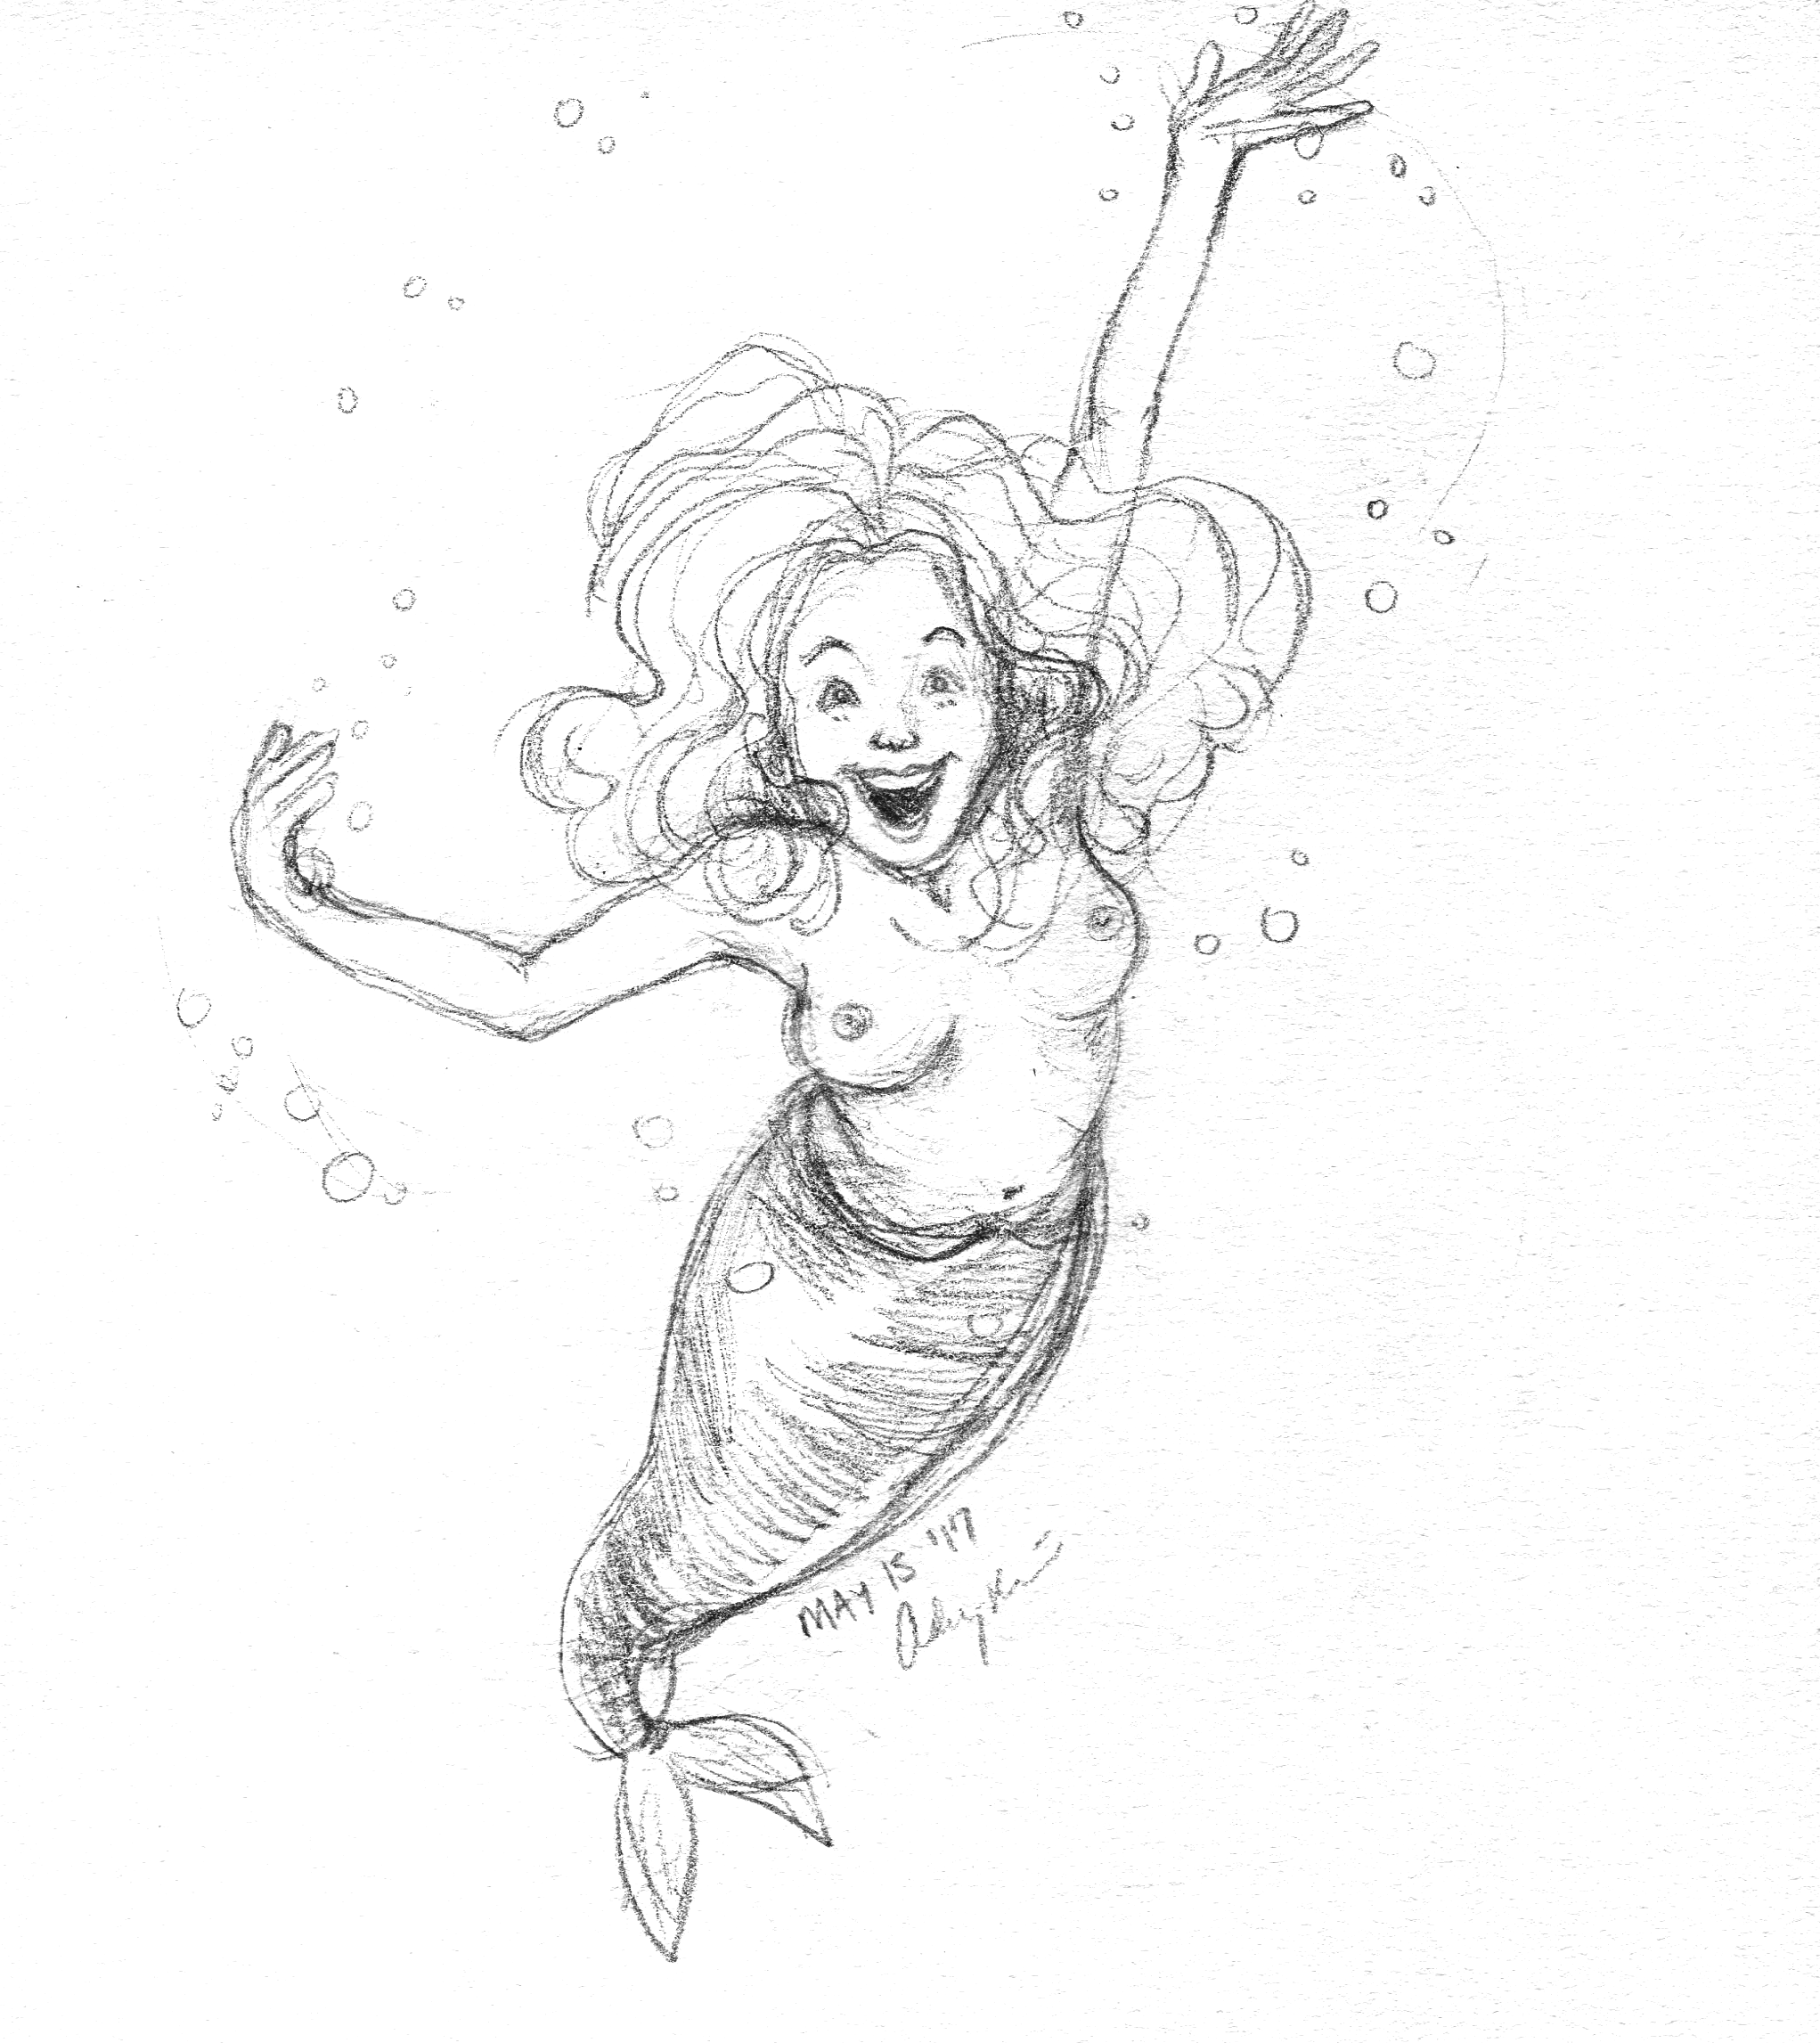 mermaid15.png